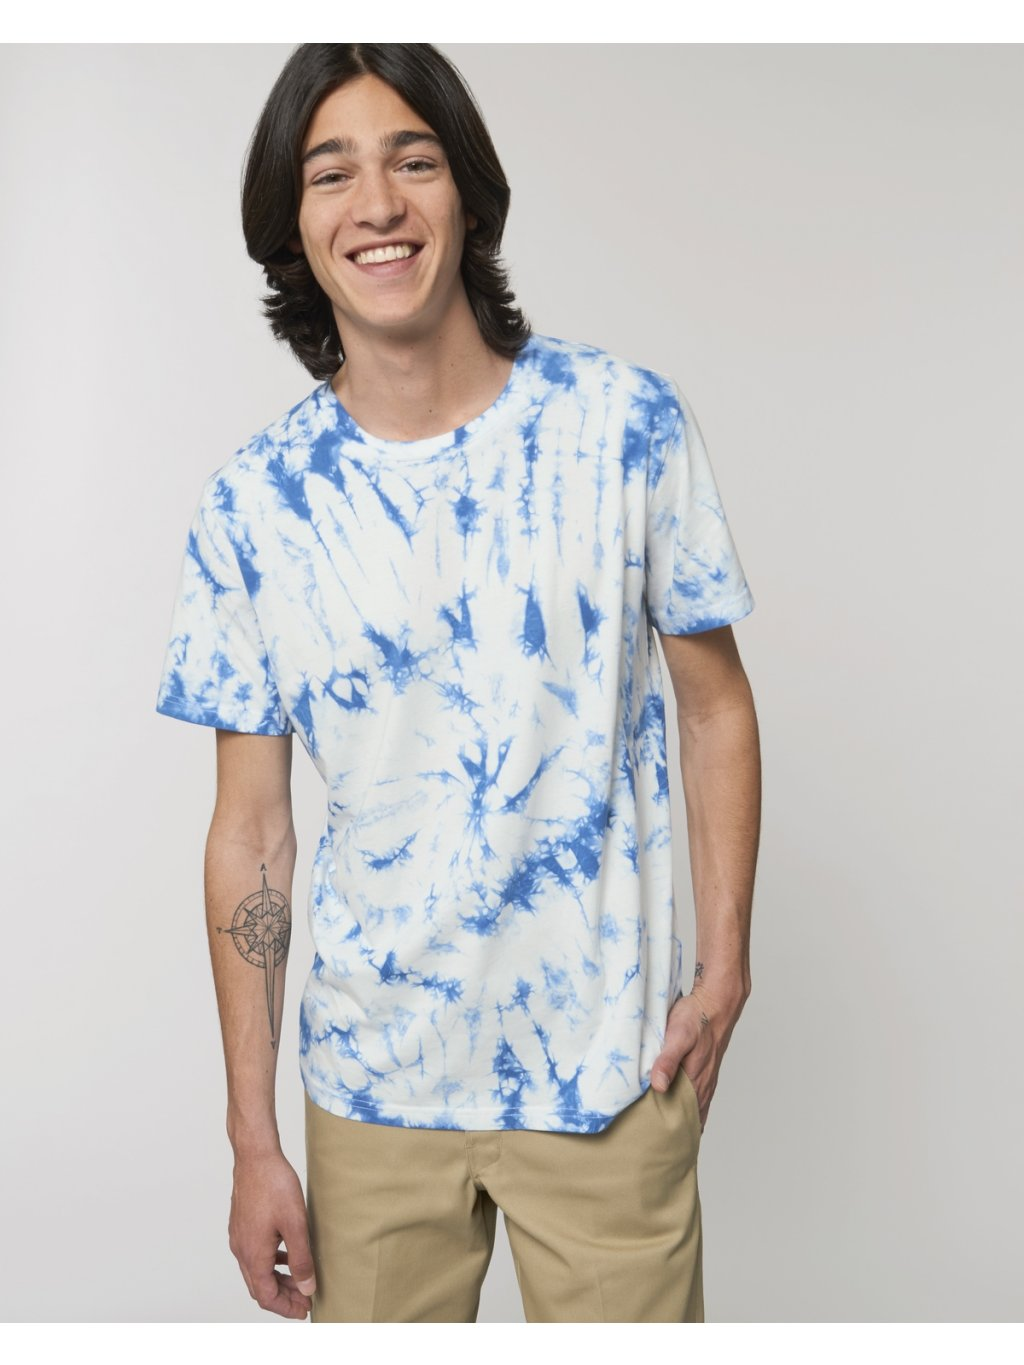 Creator Tie and Dye Majorelle Blue Studio Front Main 0